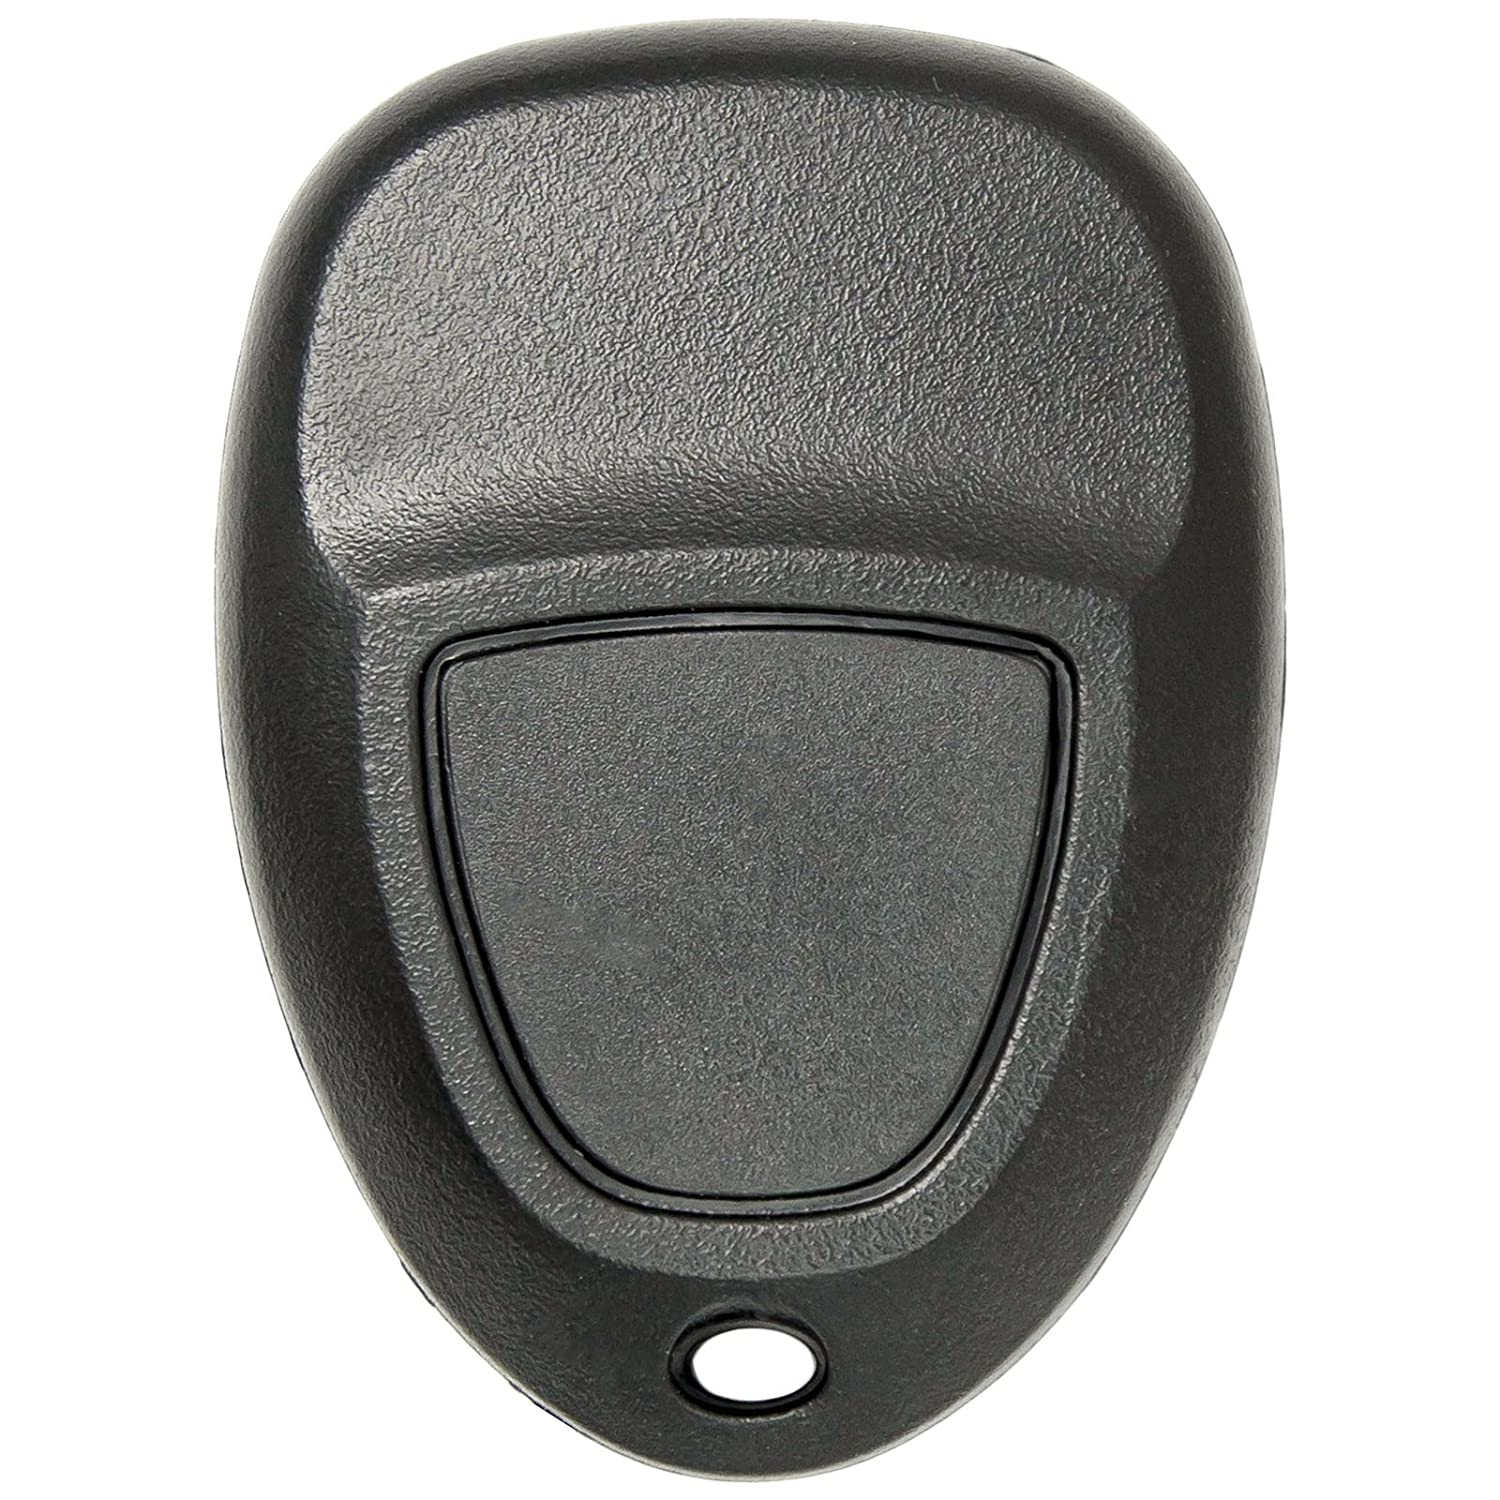 Keyless2Go Keyless Entry Remote Key Fob for GM Vehicles That Use 4 Button KOBGT04A 15100812-2 Pack